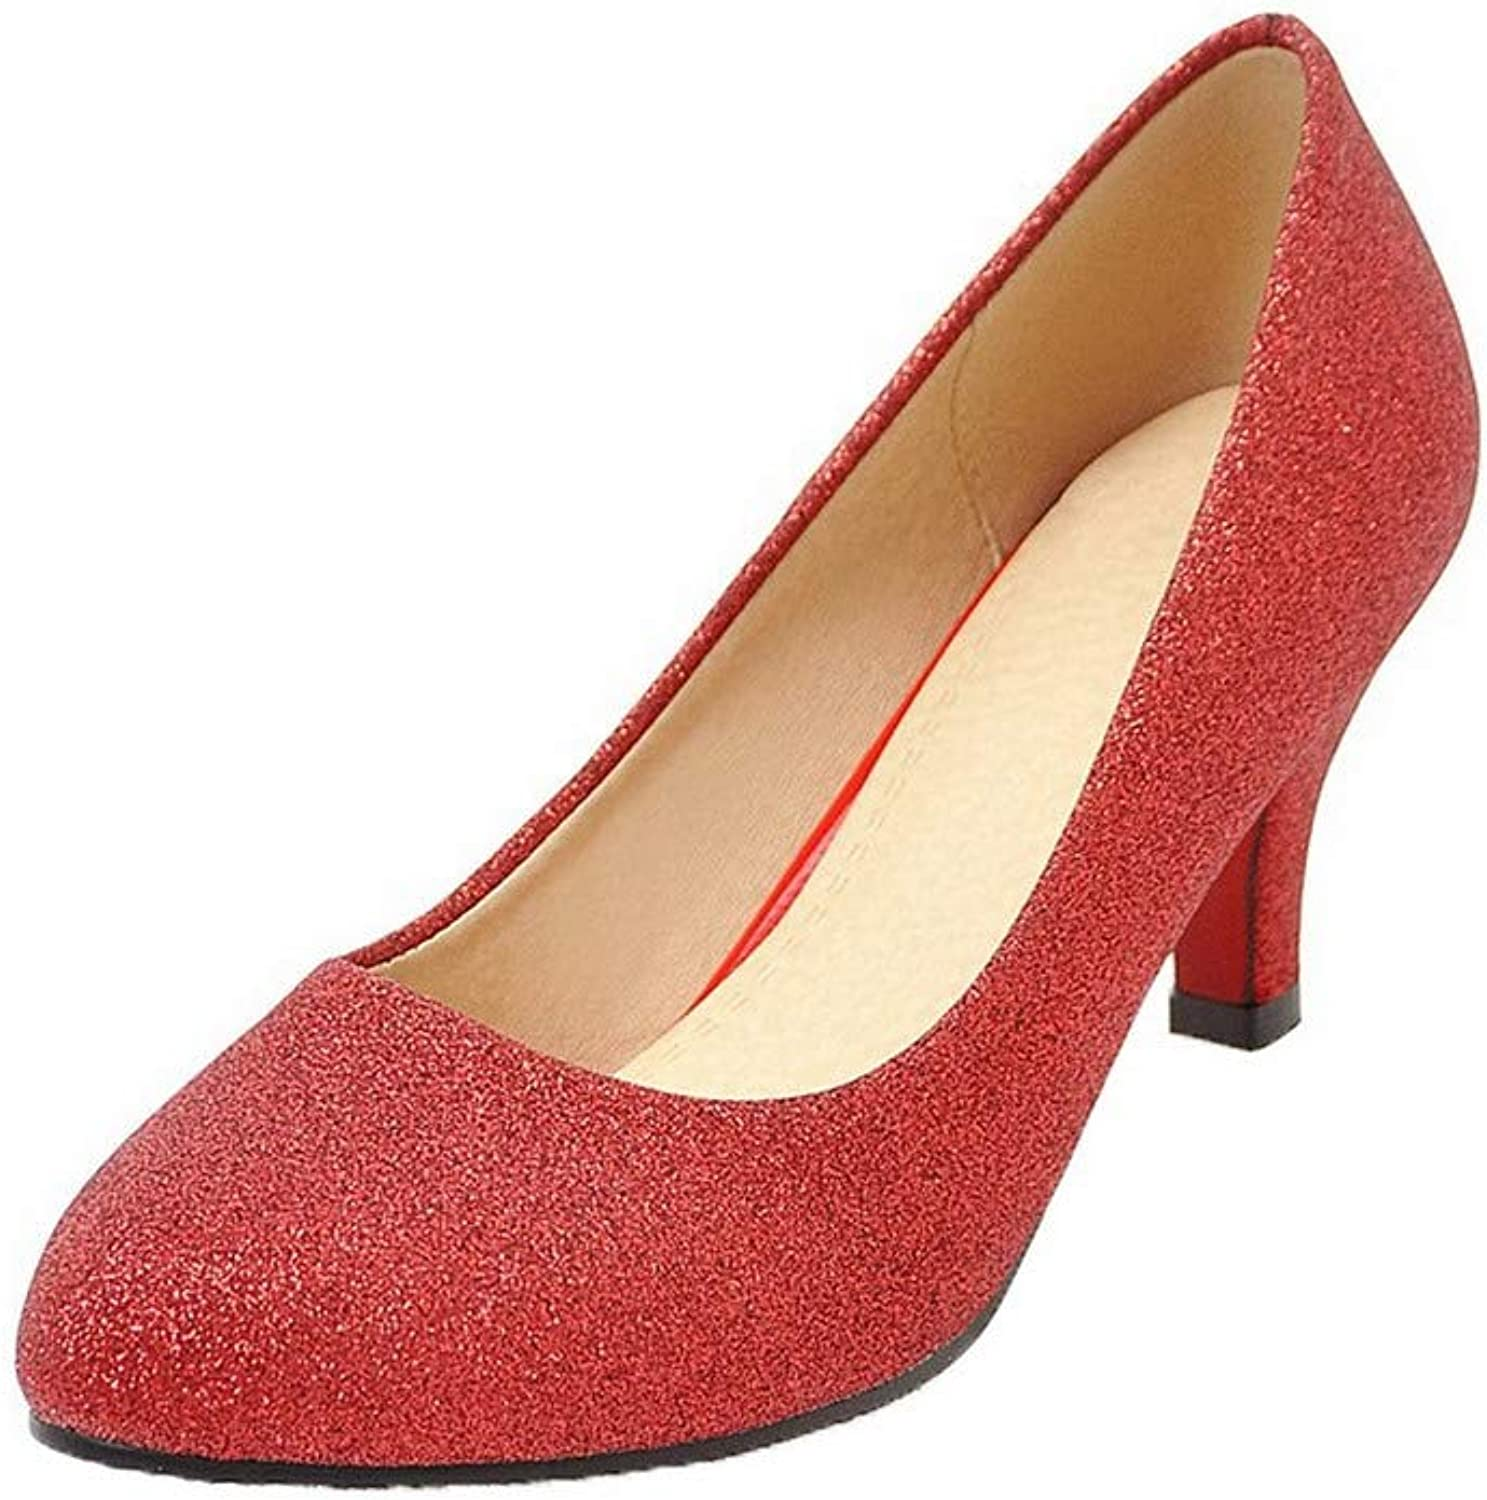 AmoonyFashion Women's Round Closed Toe Pull-On Pumps-shoes,BUTDT005774